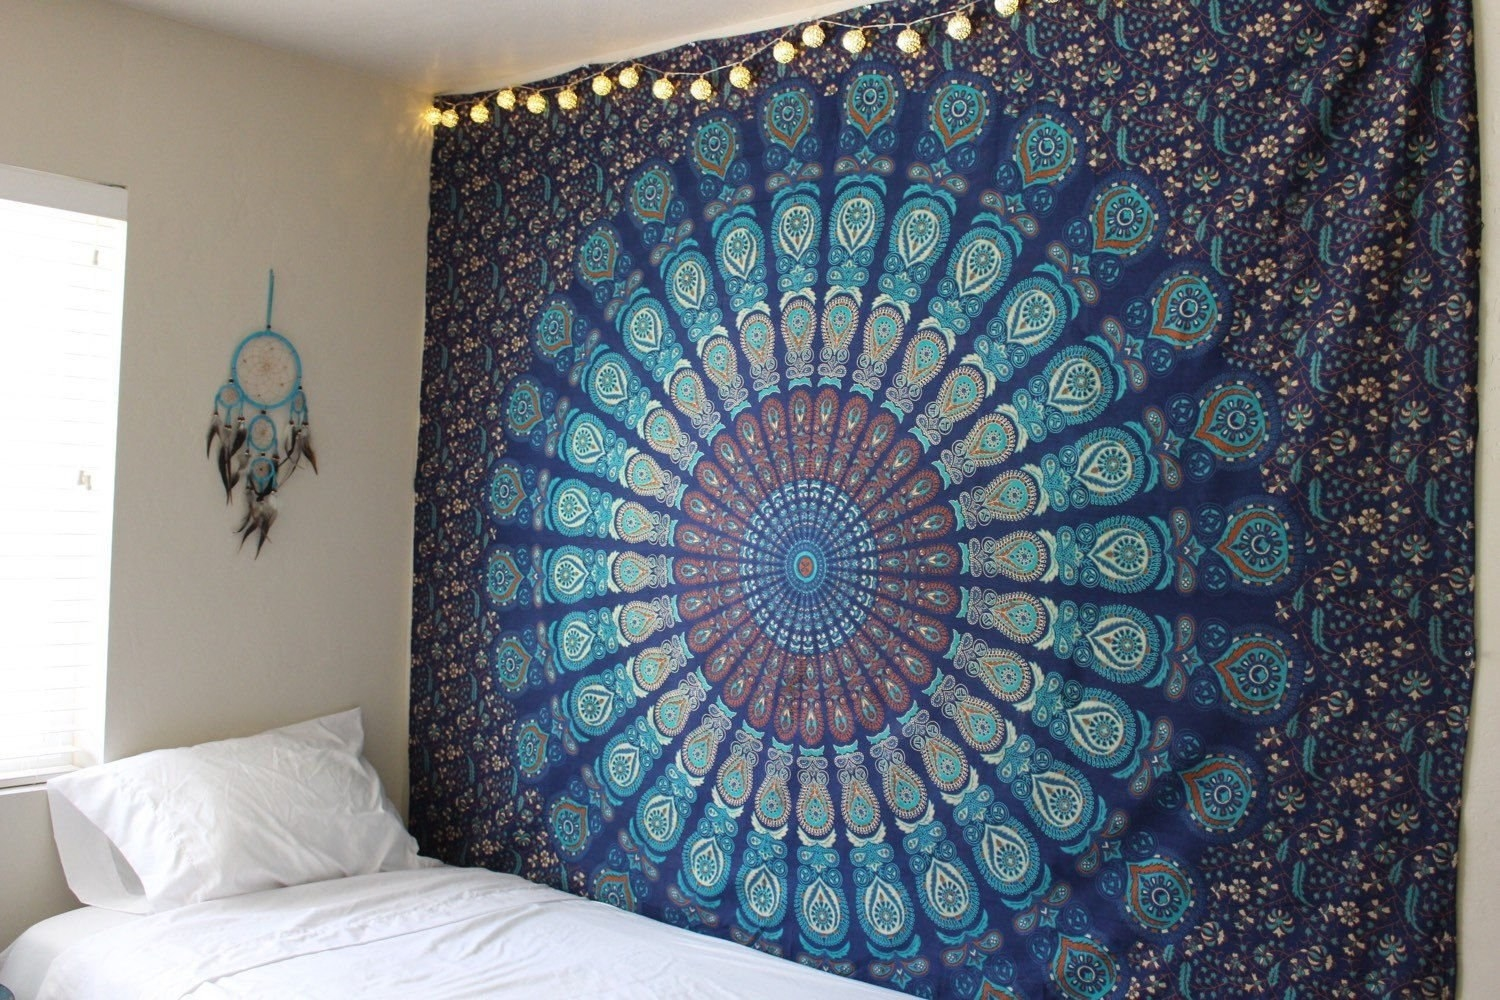 Tapestry hanging in a room beside a bed.